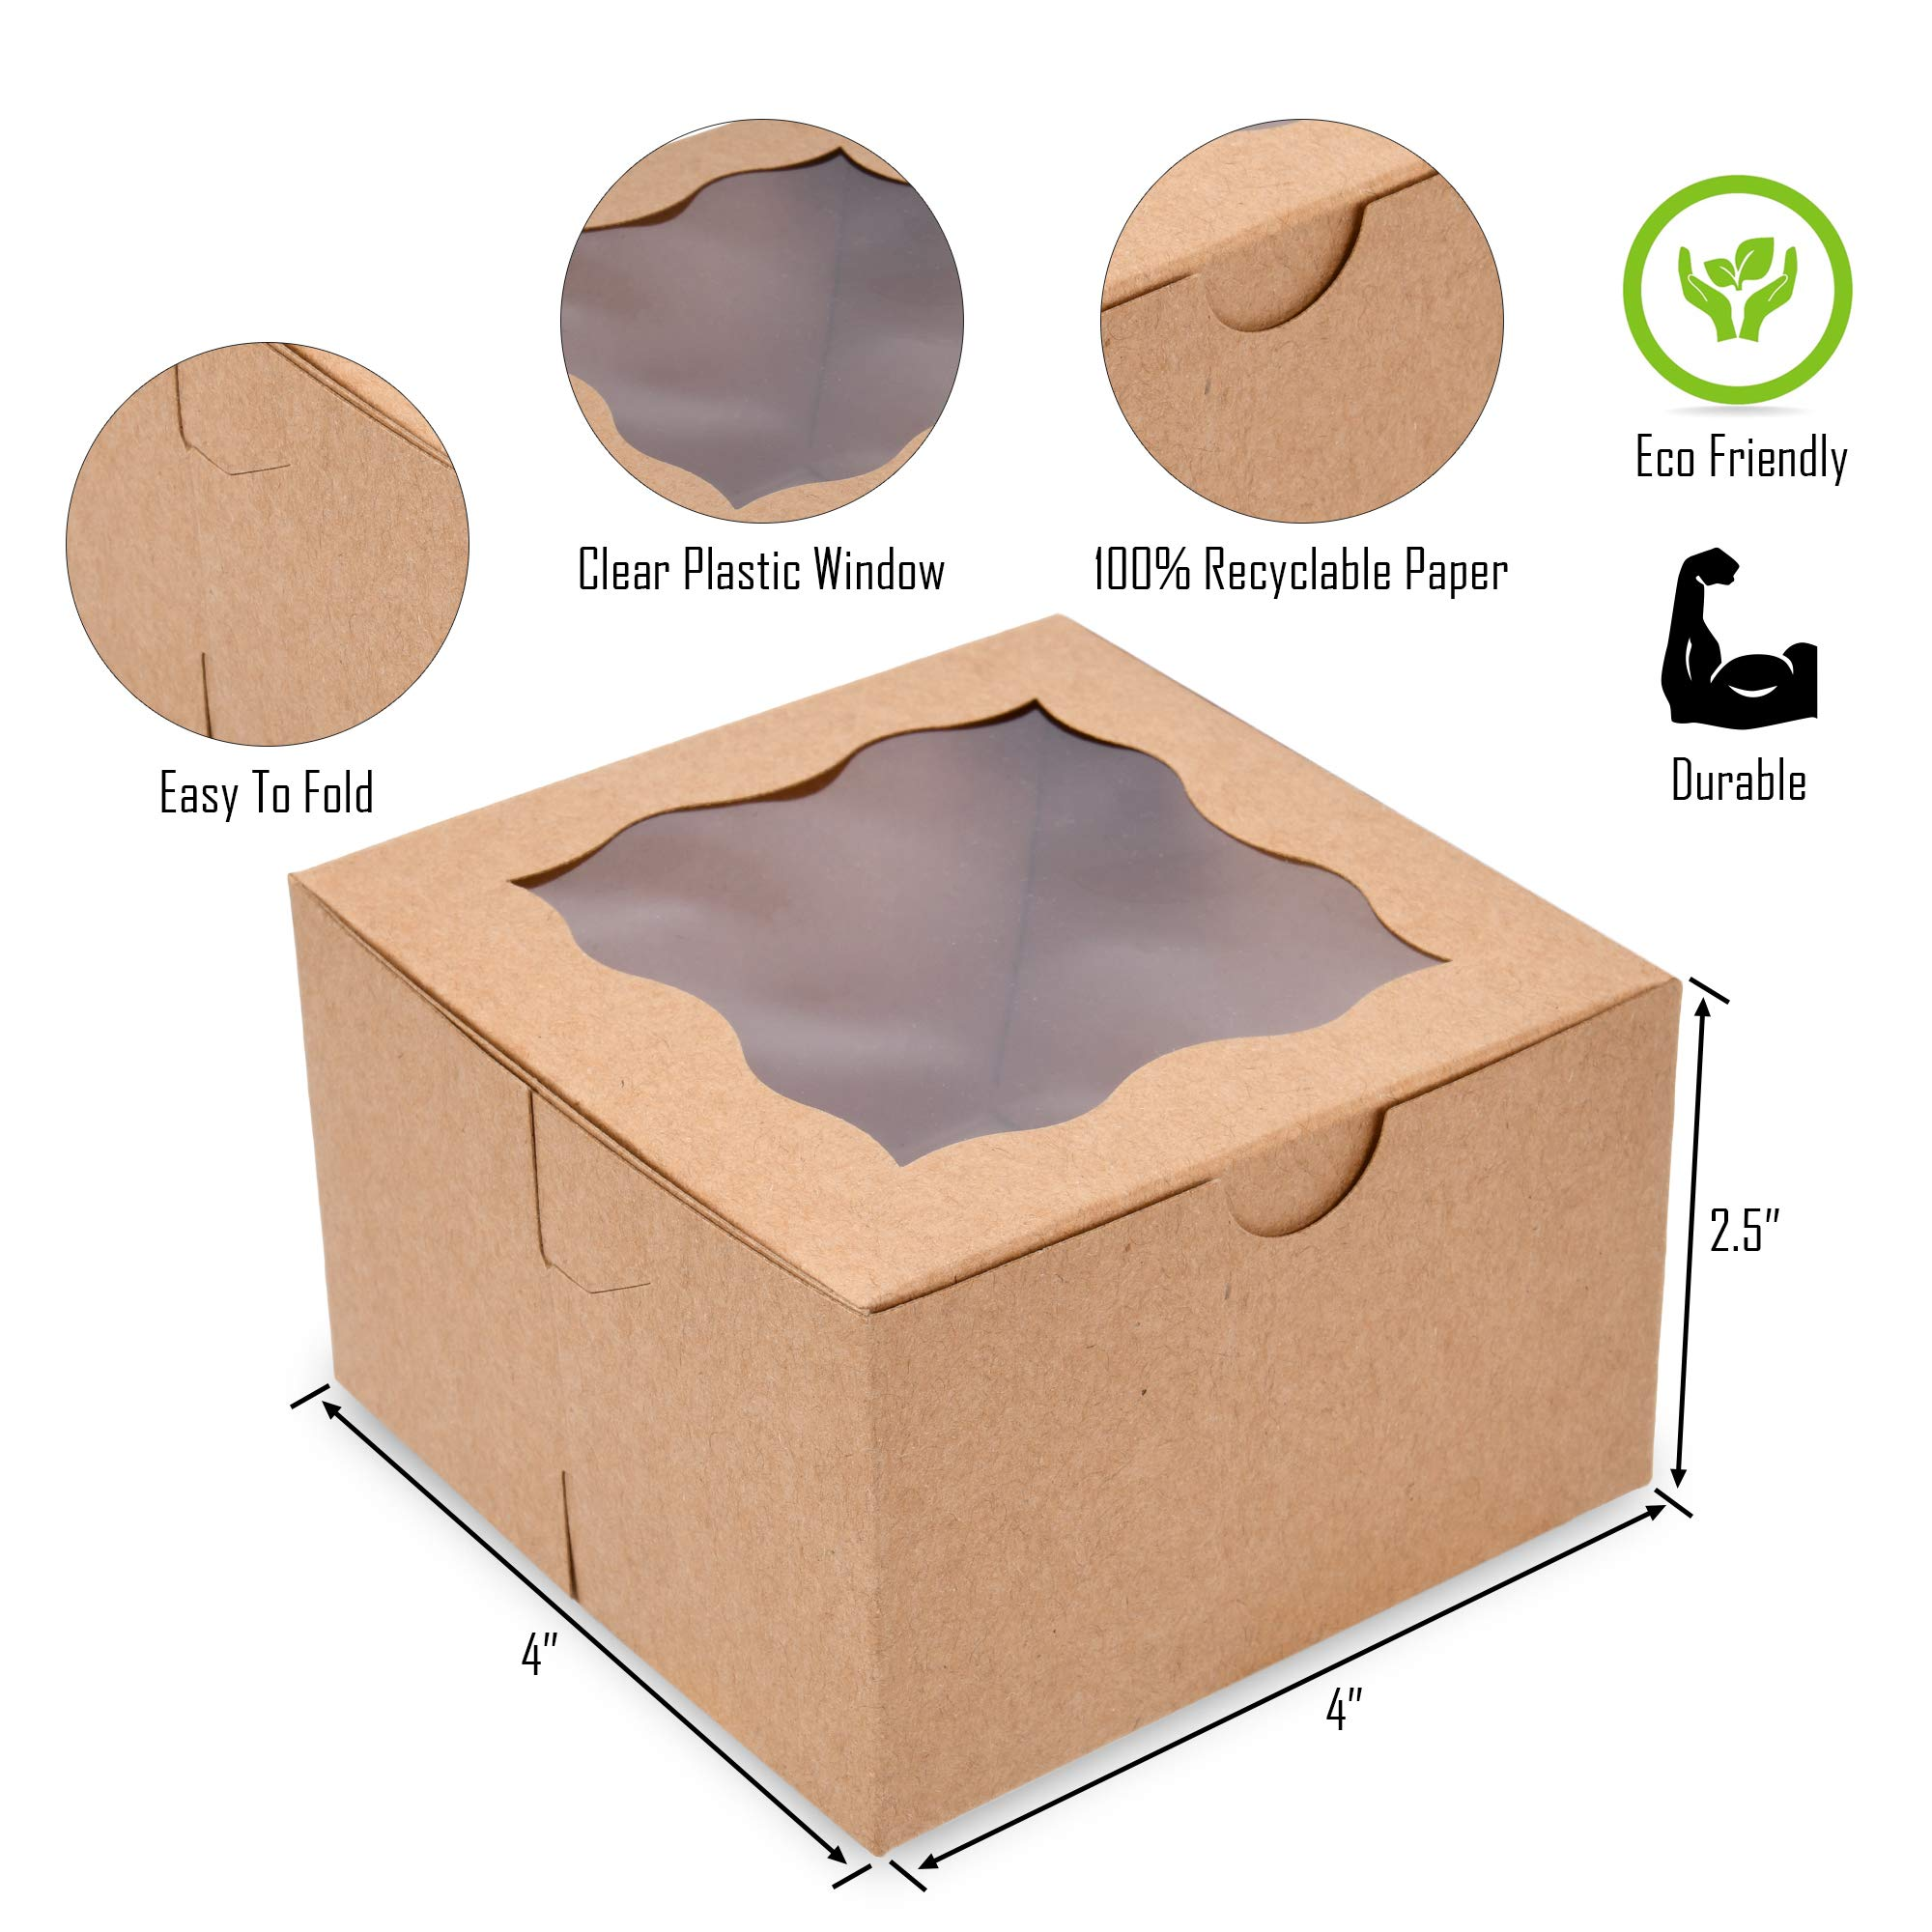 {Pack of 50} White Bakery Boxes with Window 4x4x2.5'' Cute Cardboard Gift Packaging Containers for Cookies, Cupcakes, Small Desserts, Pastry, Wedding Cake, Baby Showers, Donuts, Treats, Party Favors! by Surf City Supplies (Image #6)